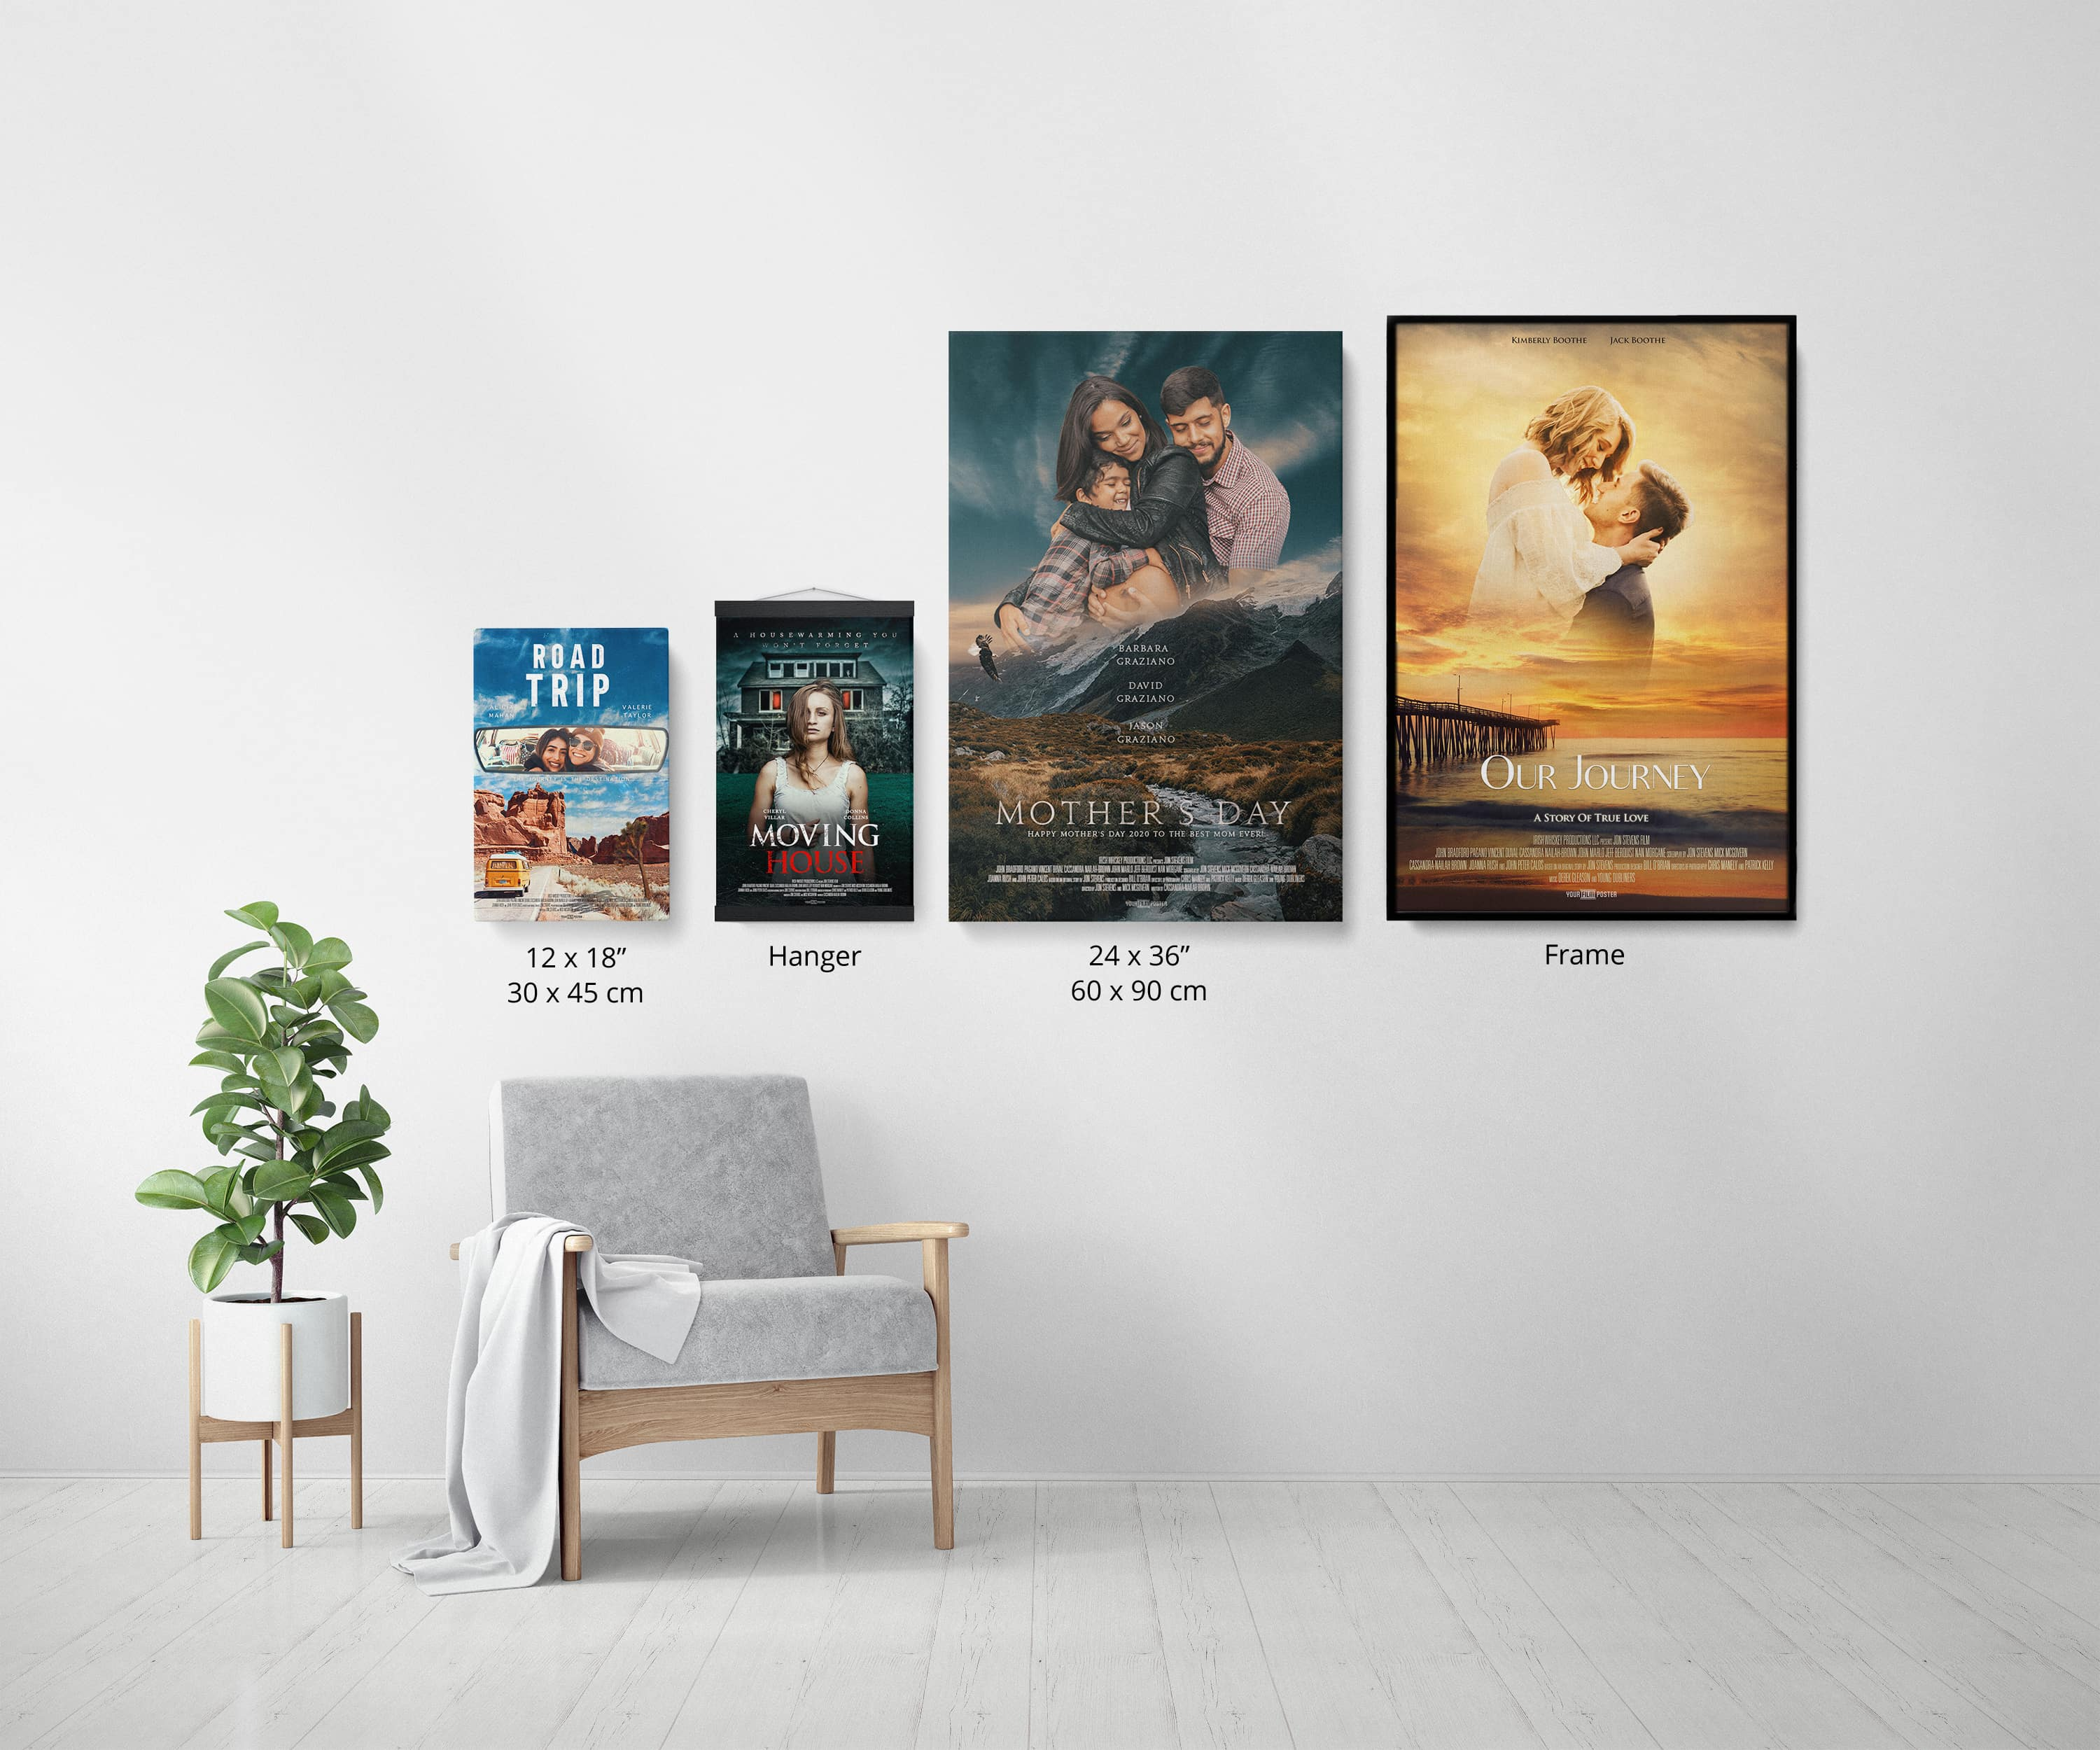 Your own personalized movie poster in two sizes, small and large, with either a hanger or a frame